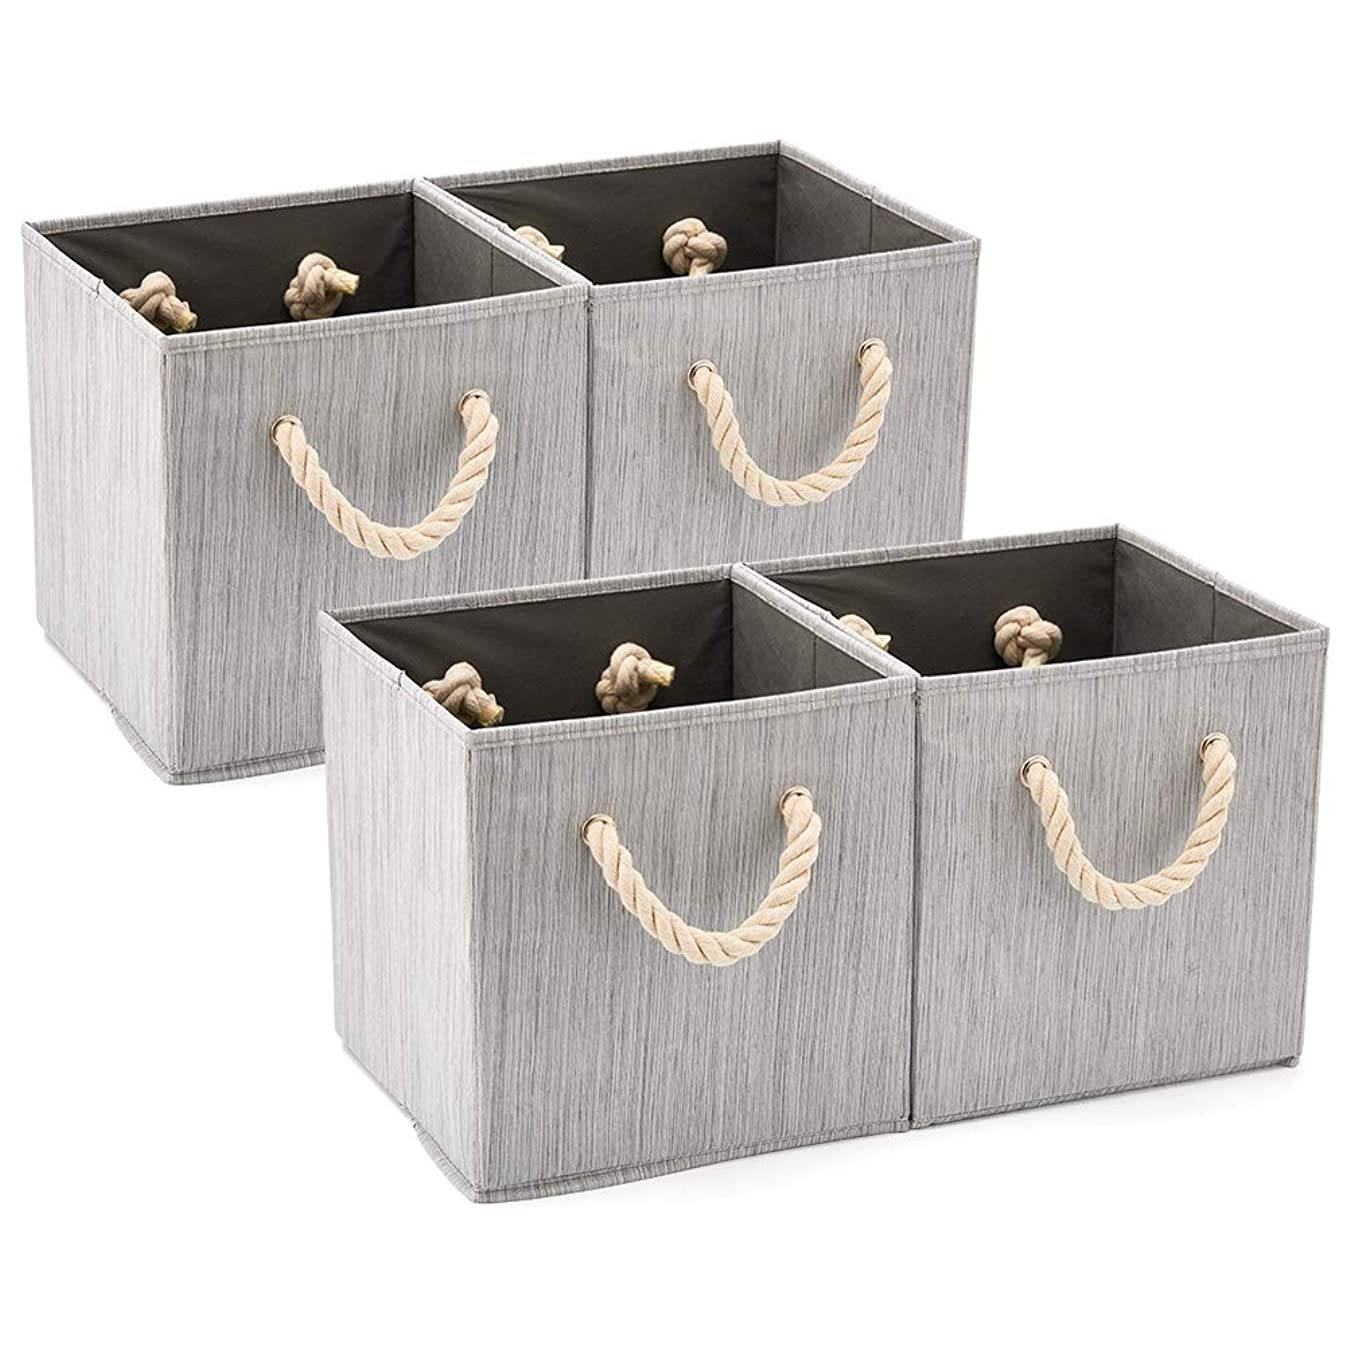 Set of 4 EZOWare Foldable Bamboo Fabric Storage Bin with Cotton Rope Handle, Collapsible Resistant Basket Box Organizer for Shelves, Closet, and More – (10.5x10.5x11 inch) (Gray)